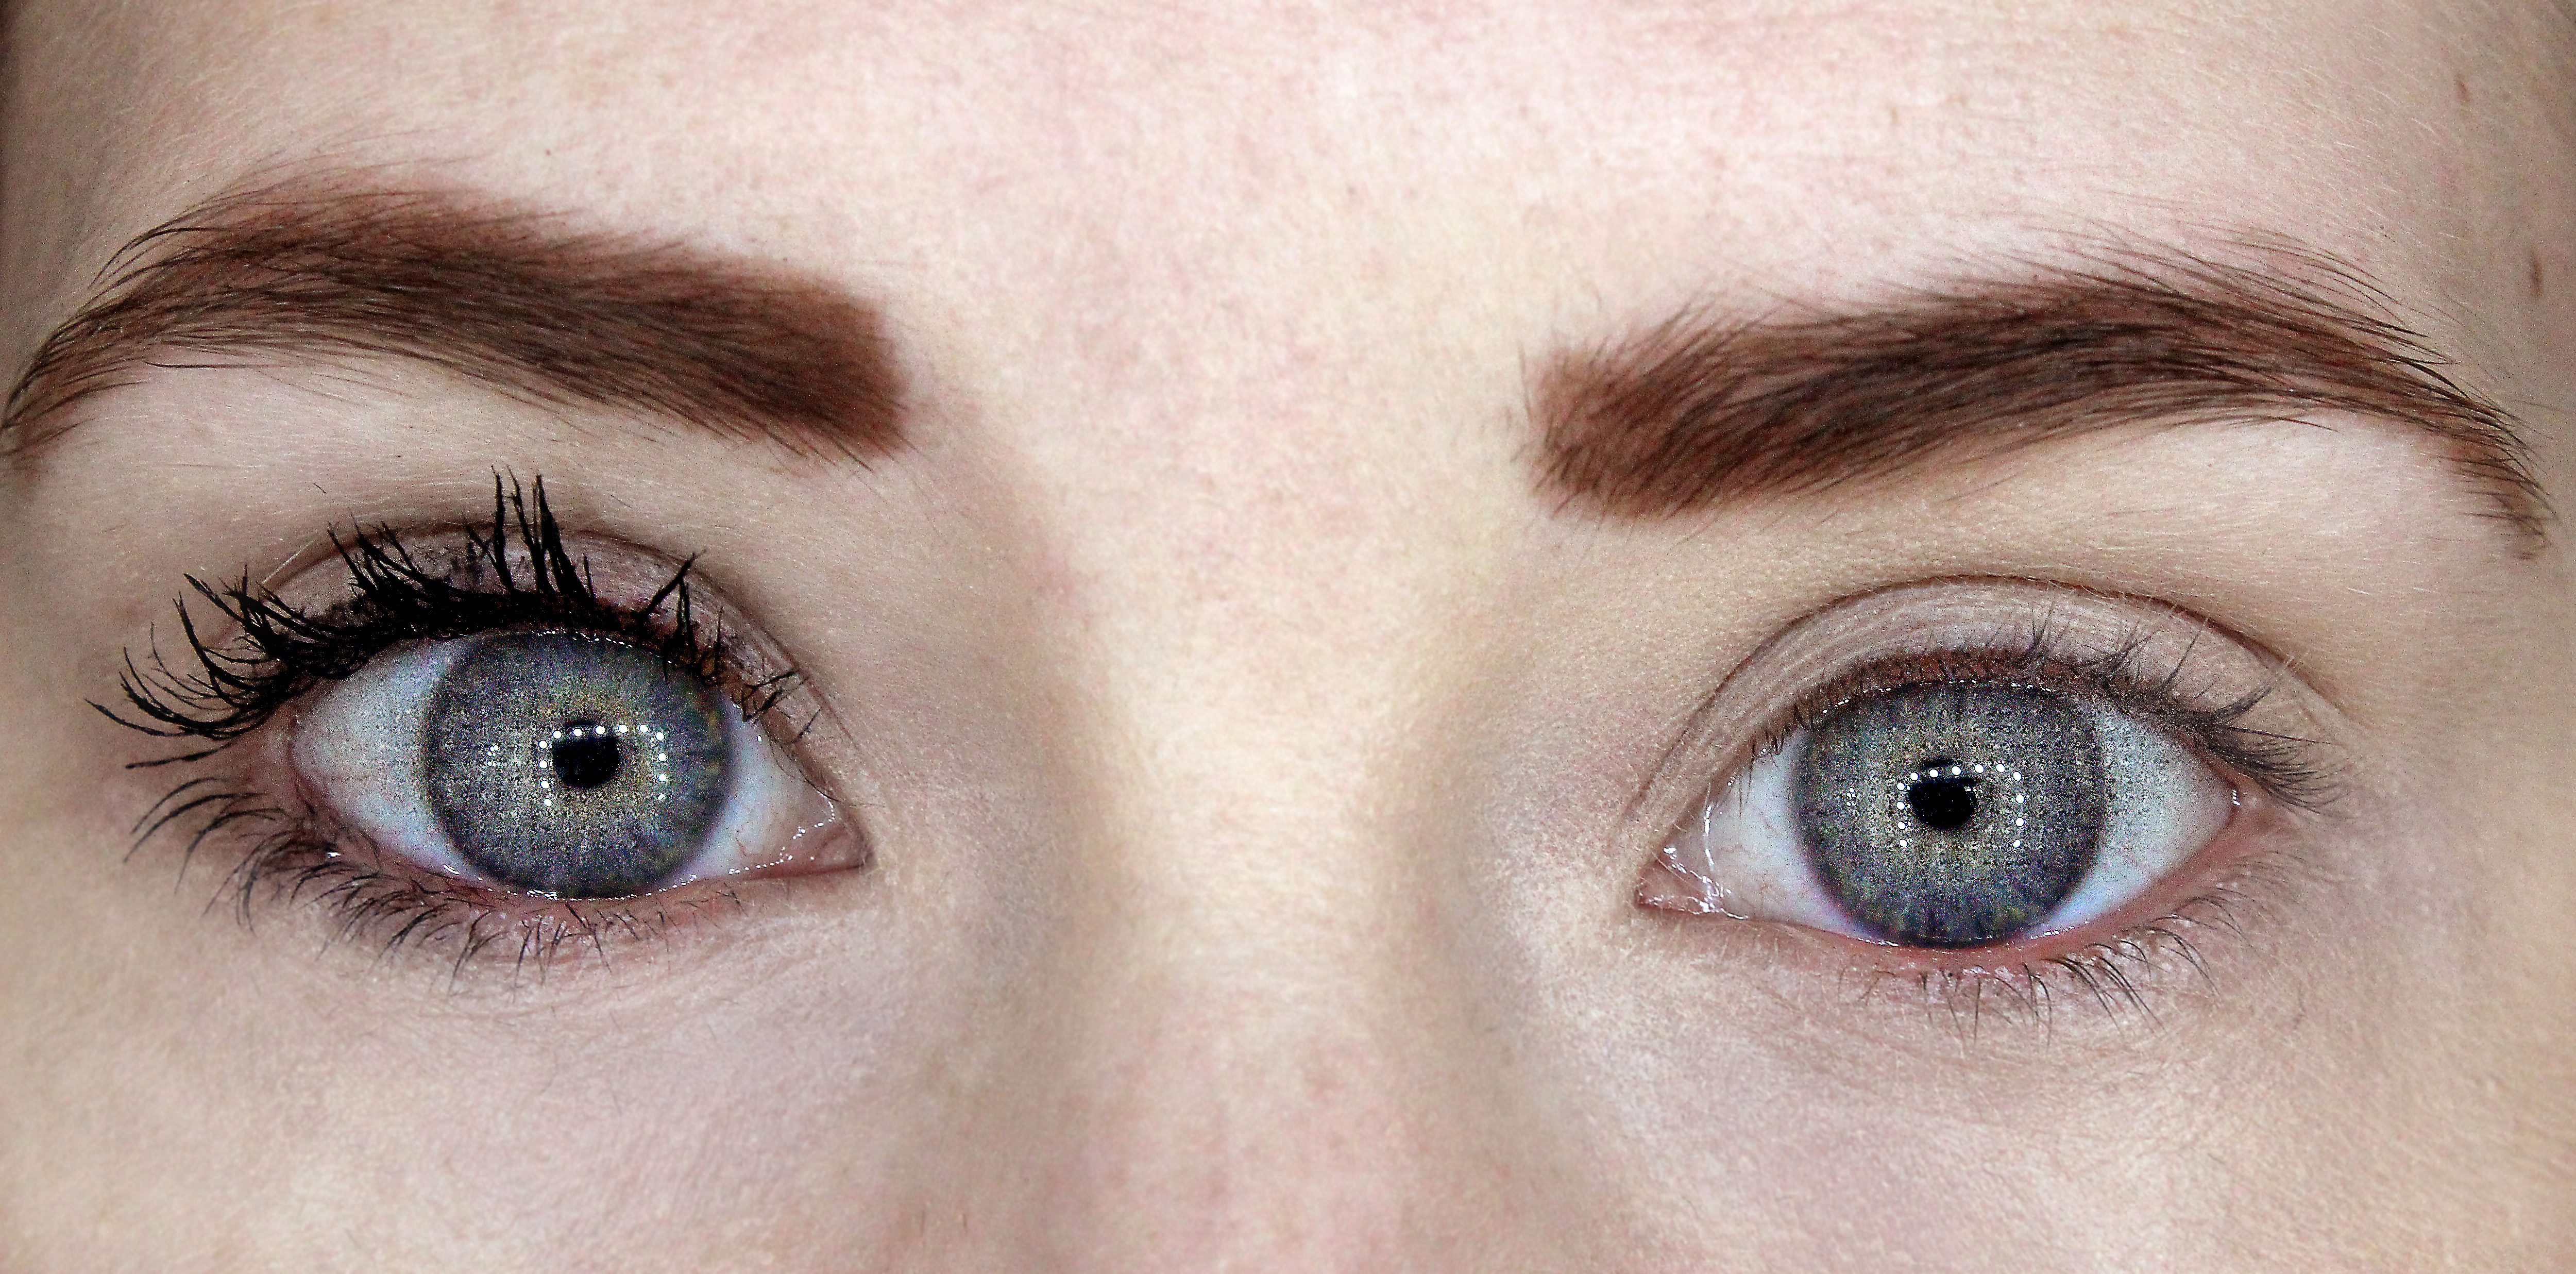 Magnetic Lash Fibre Mascara | Before and After | xameliax